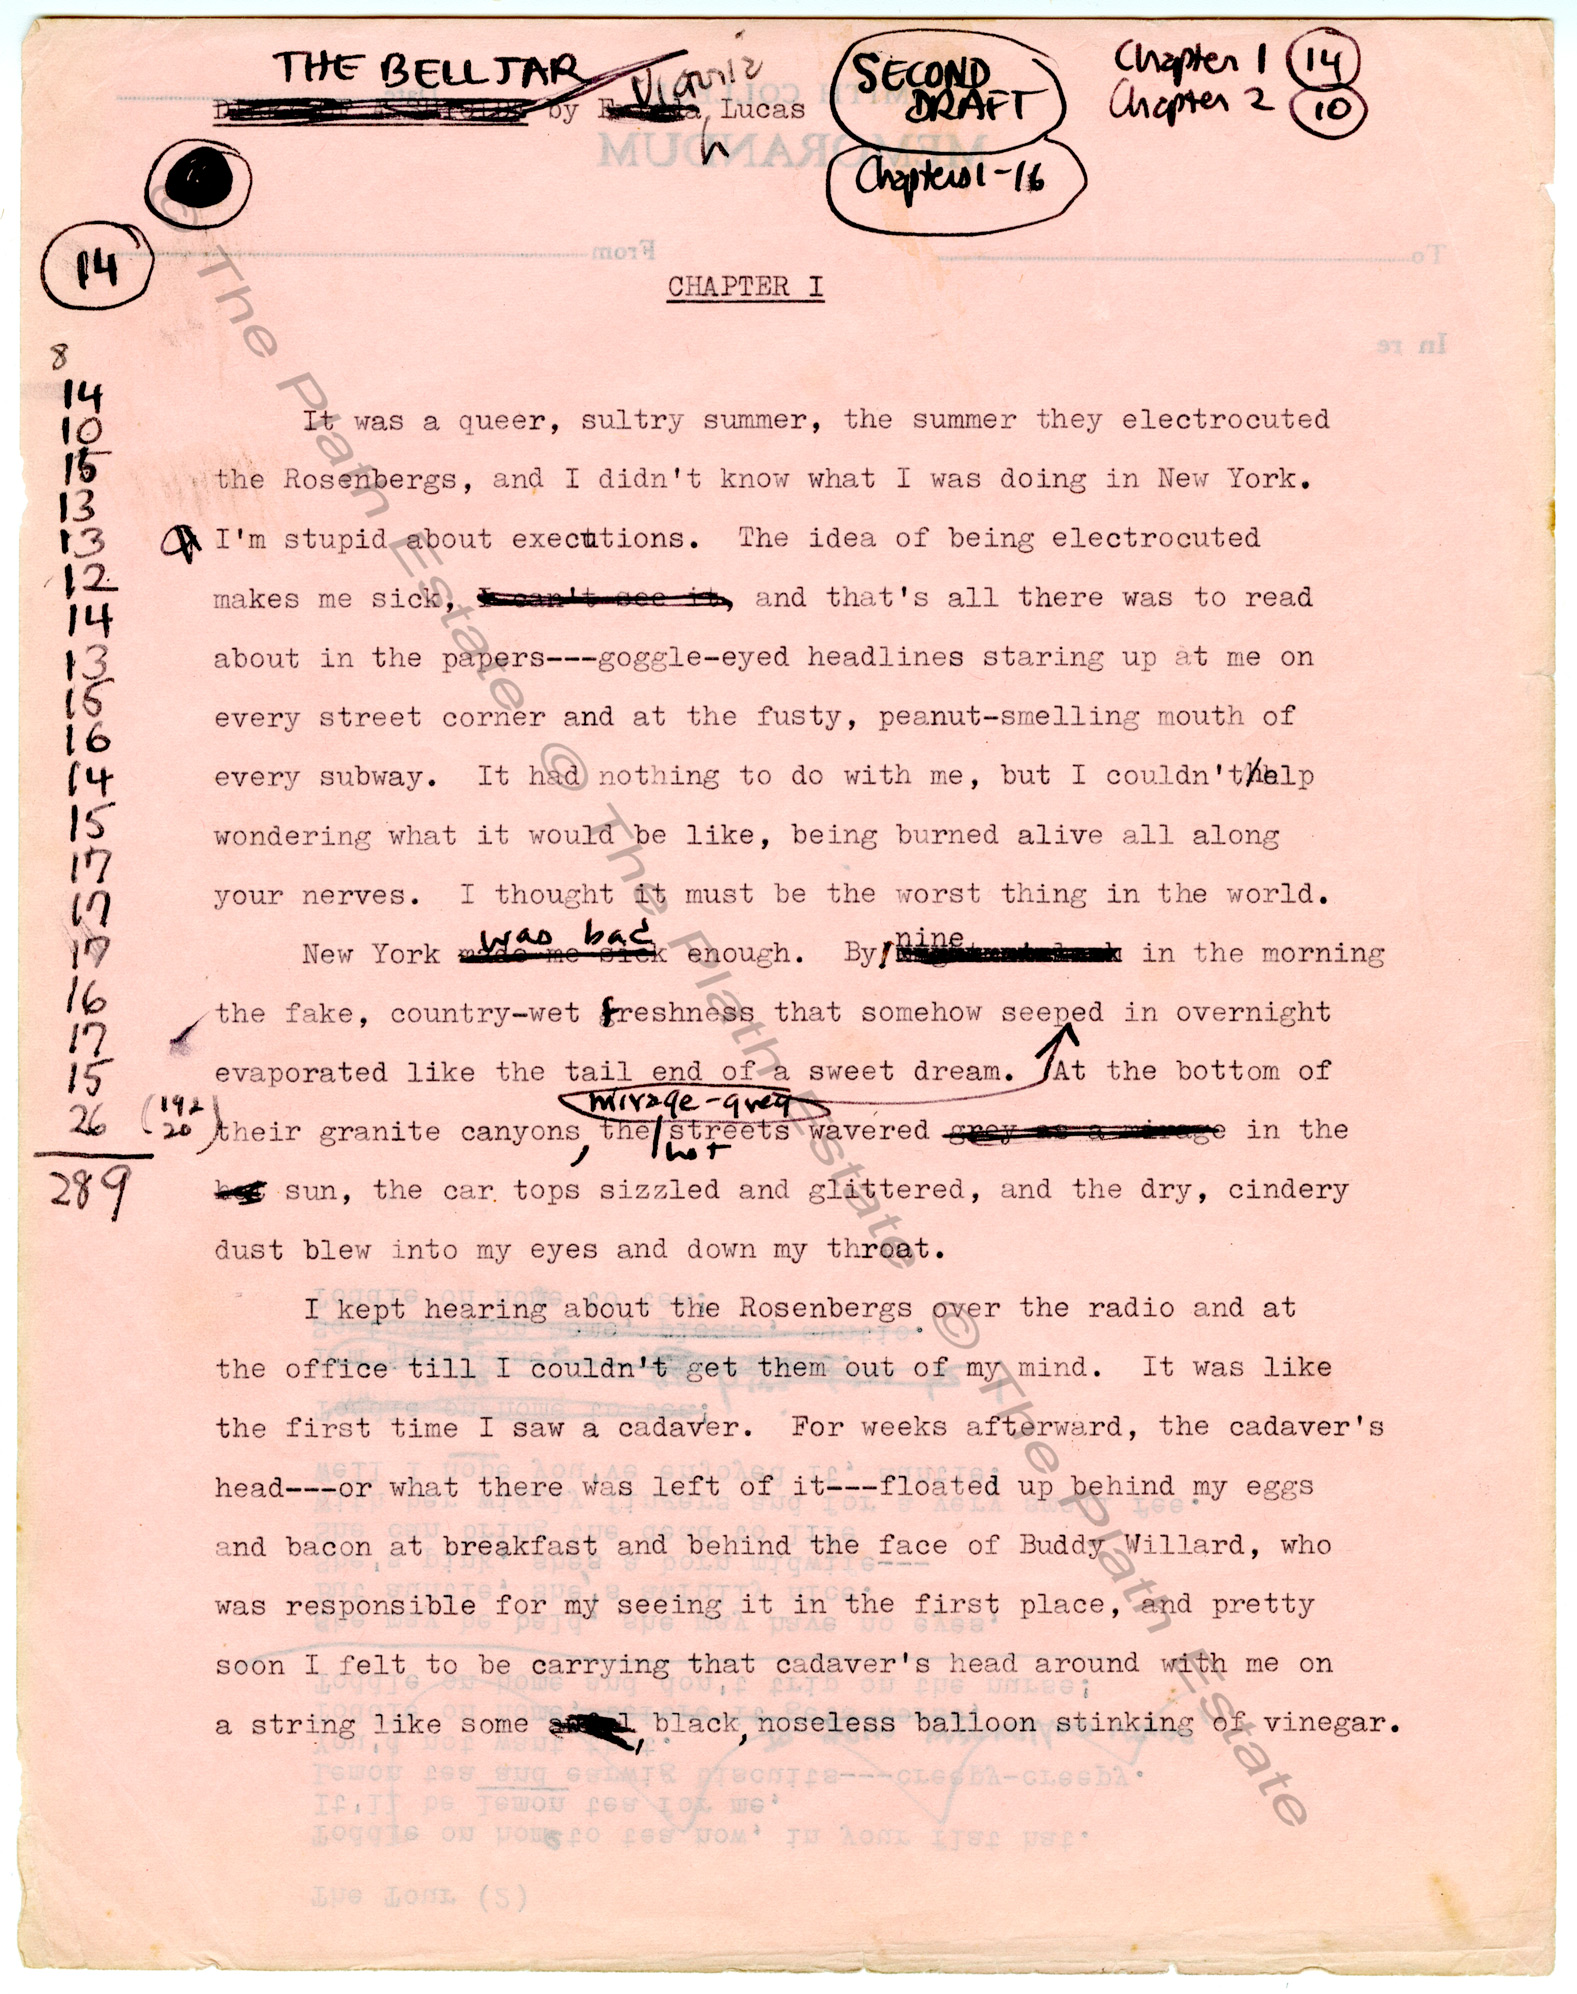 Typescript second draft of The Bell Jar by Sylvia Plath